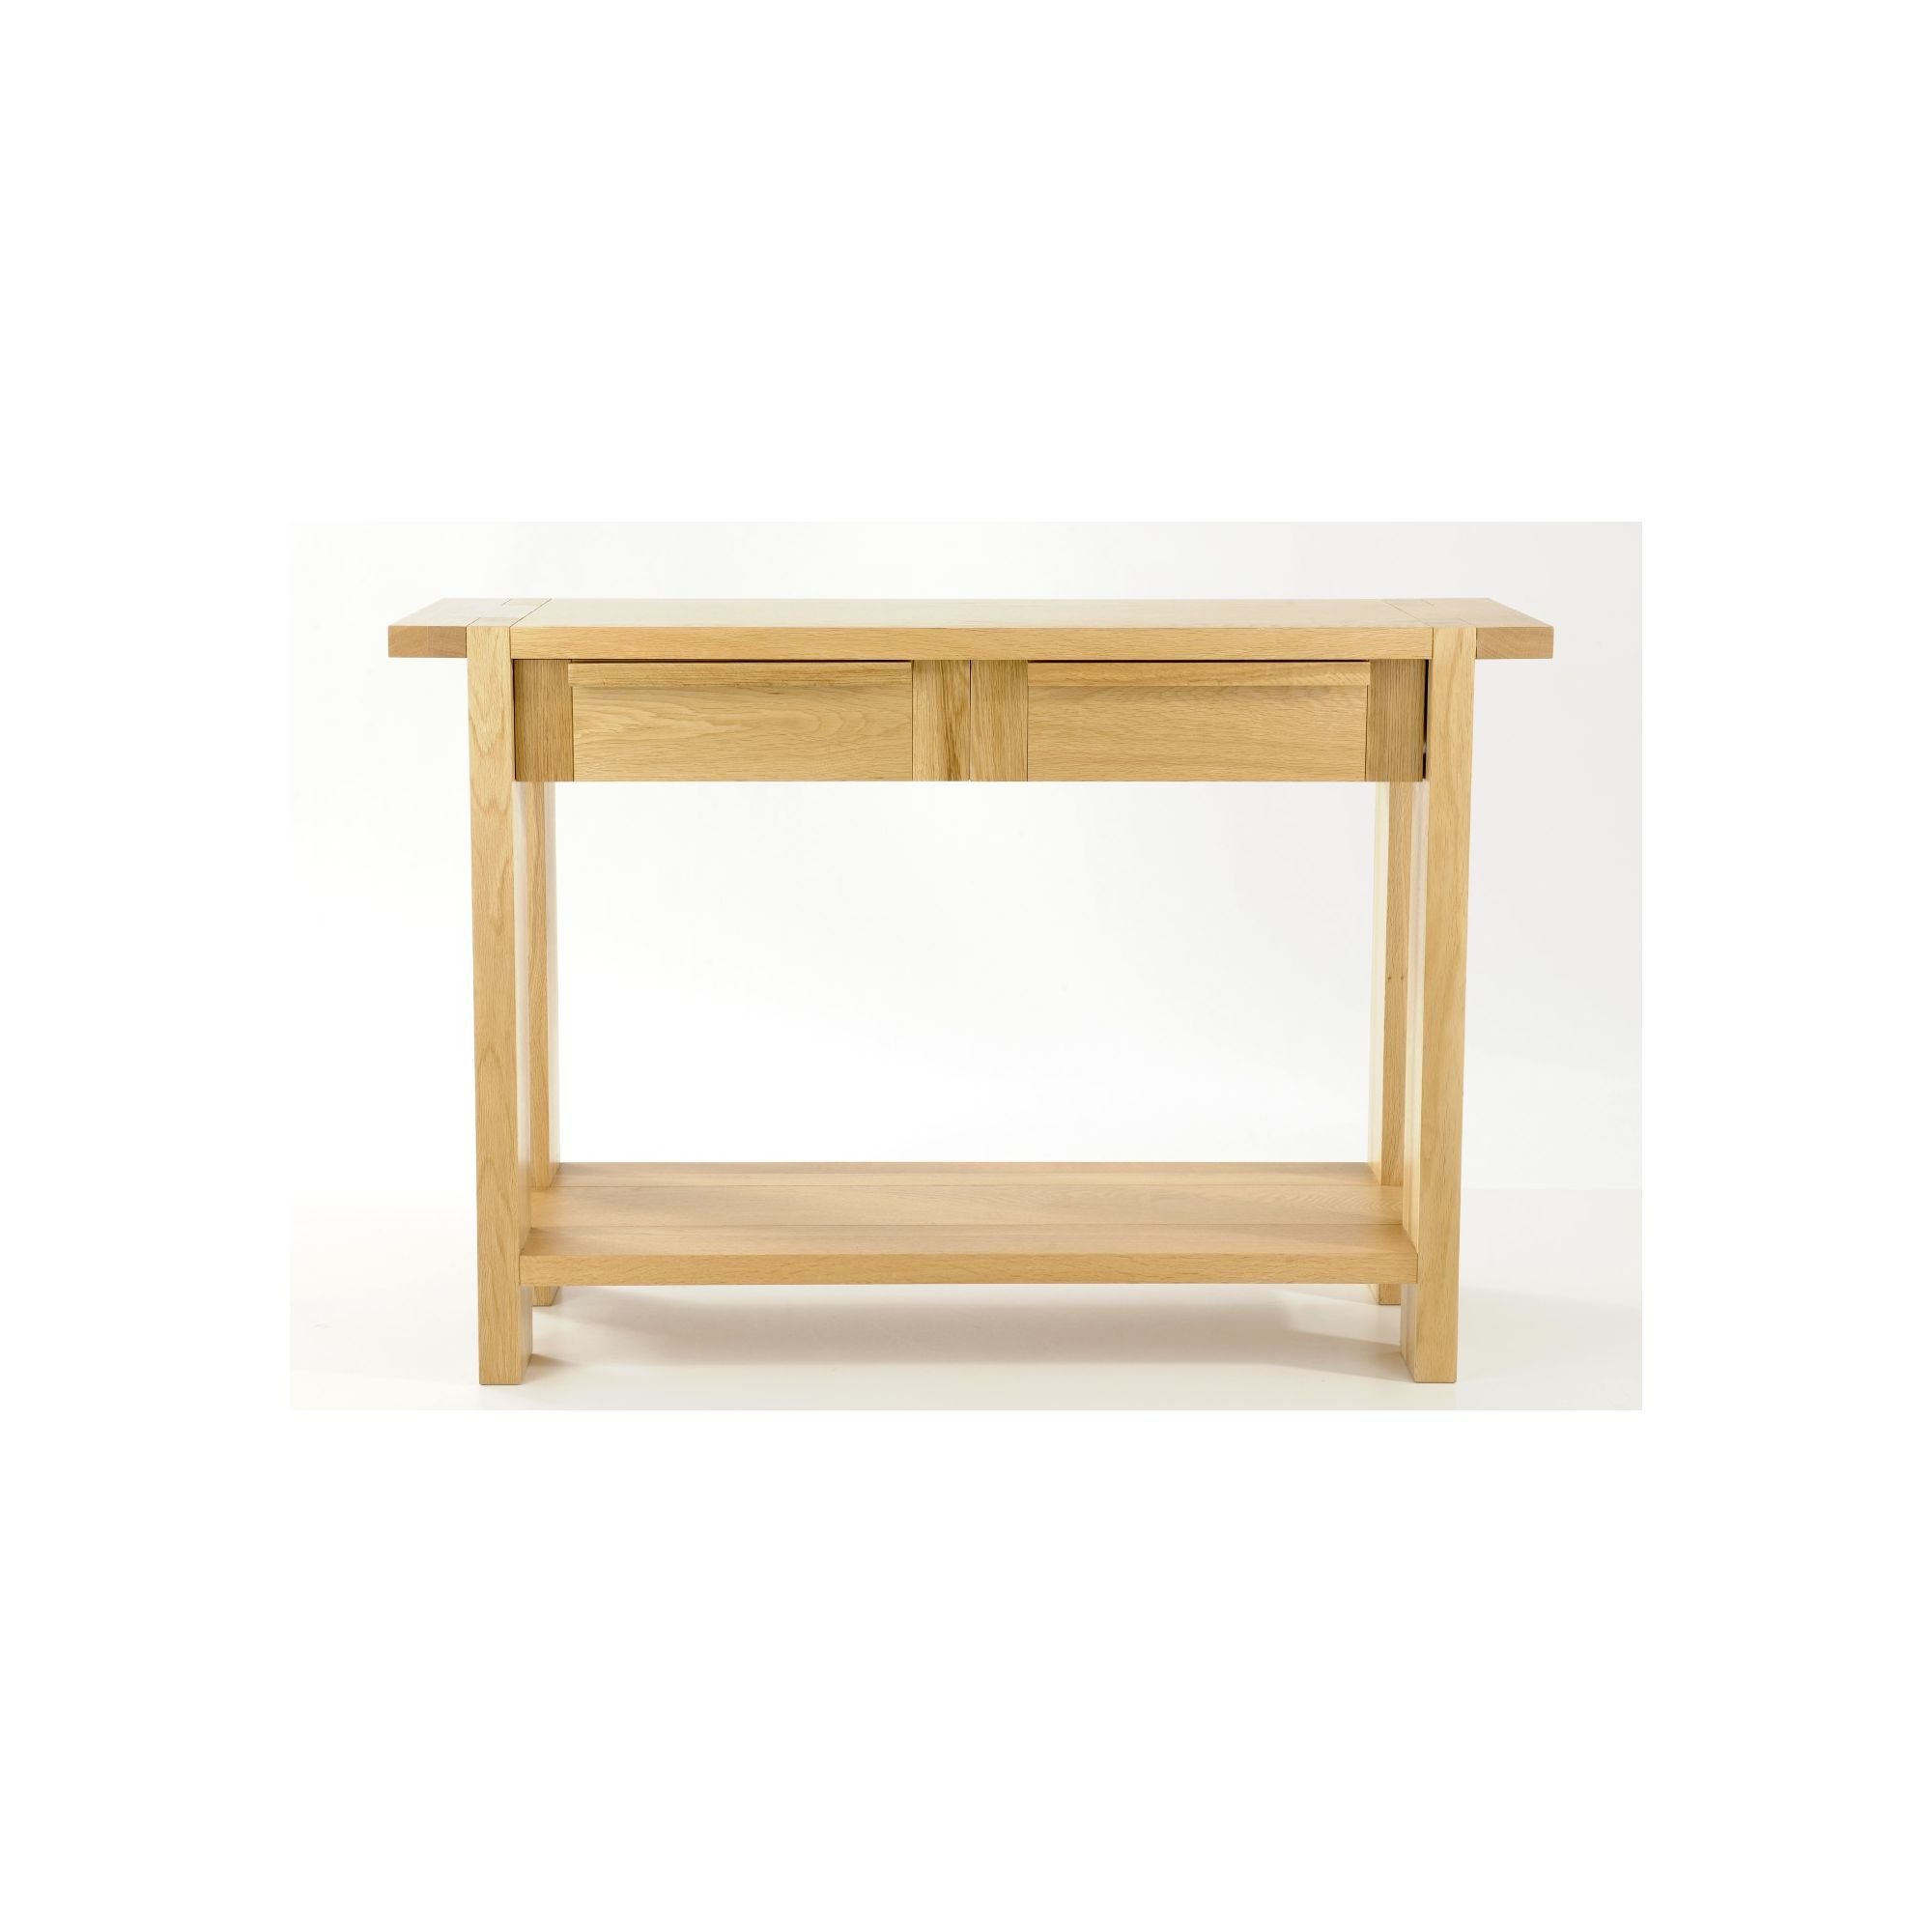 Originals Xanadu Dining Console Table at Tescos Direct